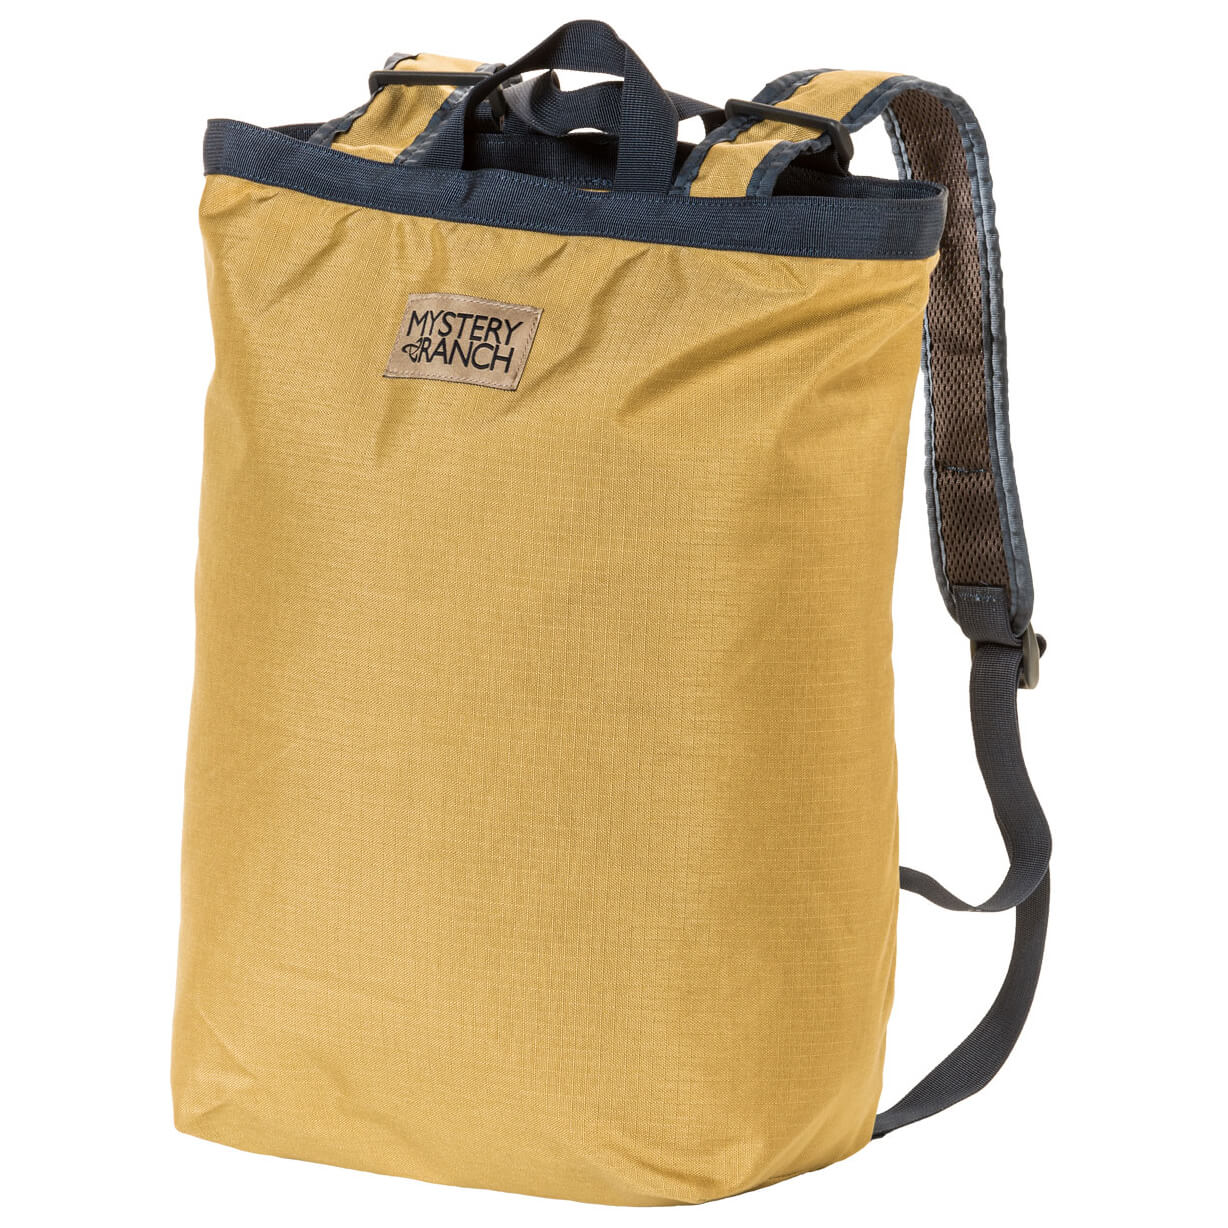 Mystery Ranch Booty Bag 16 Daypack Buy Online